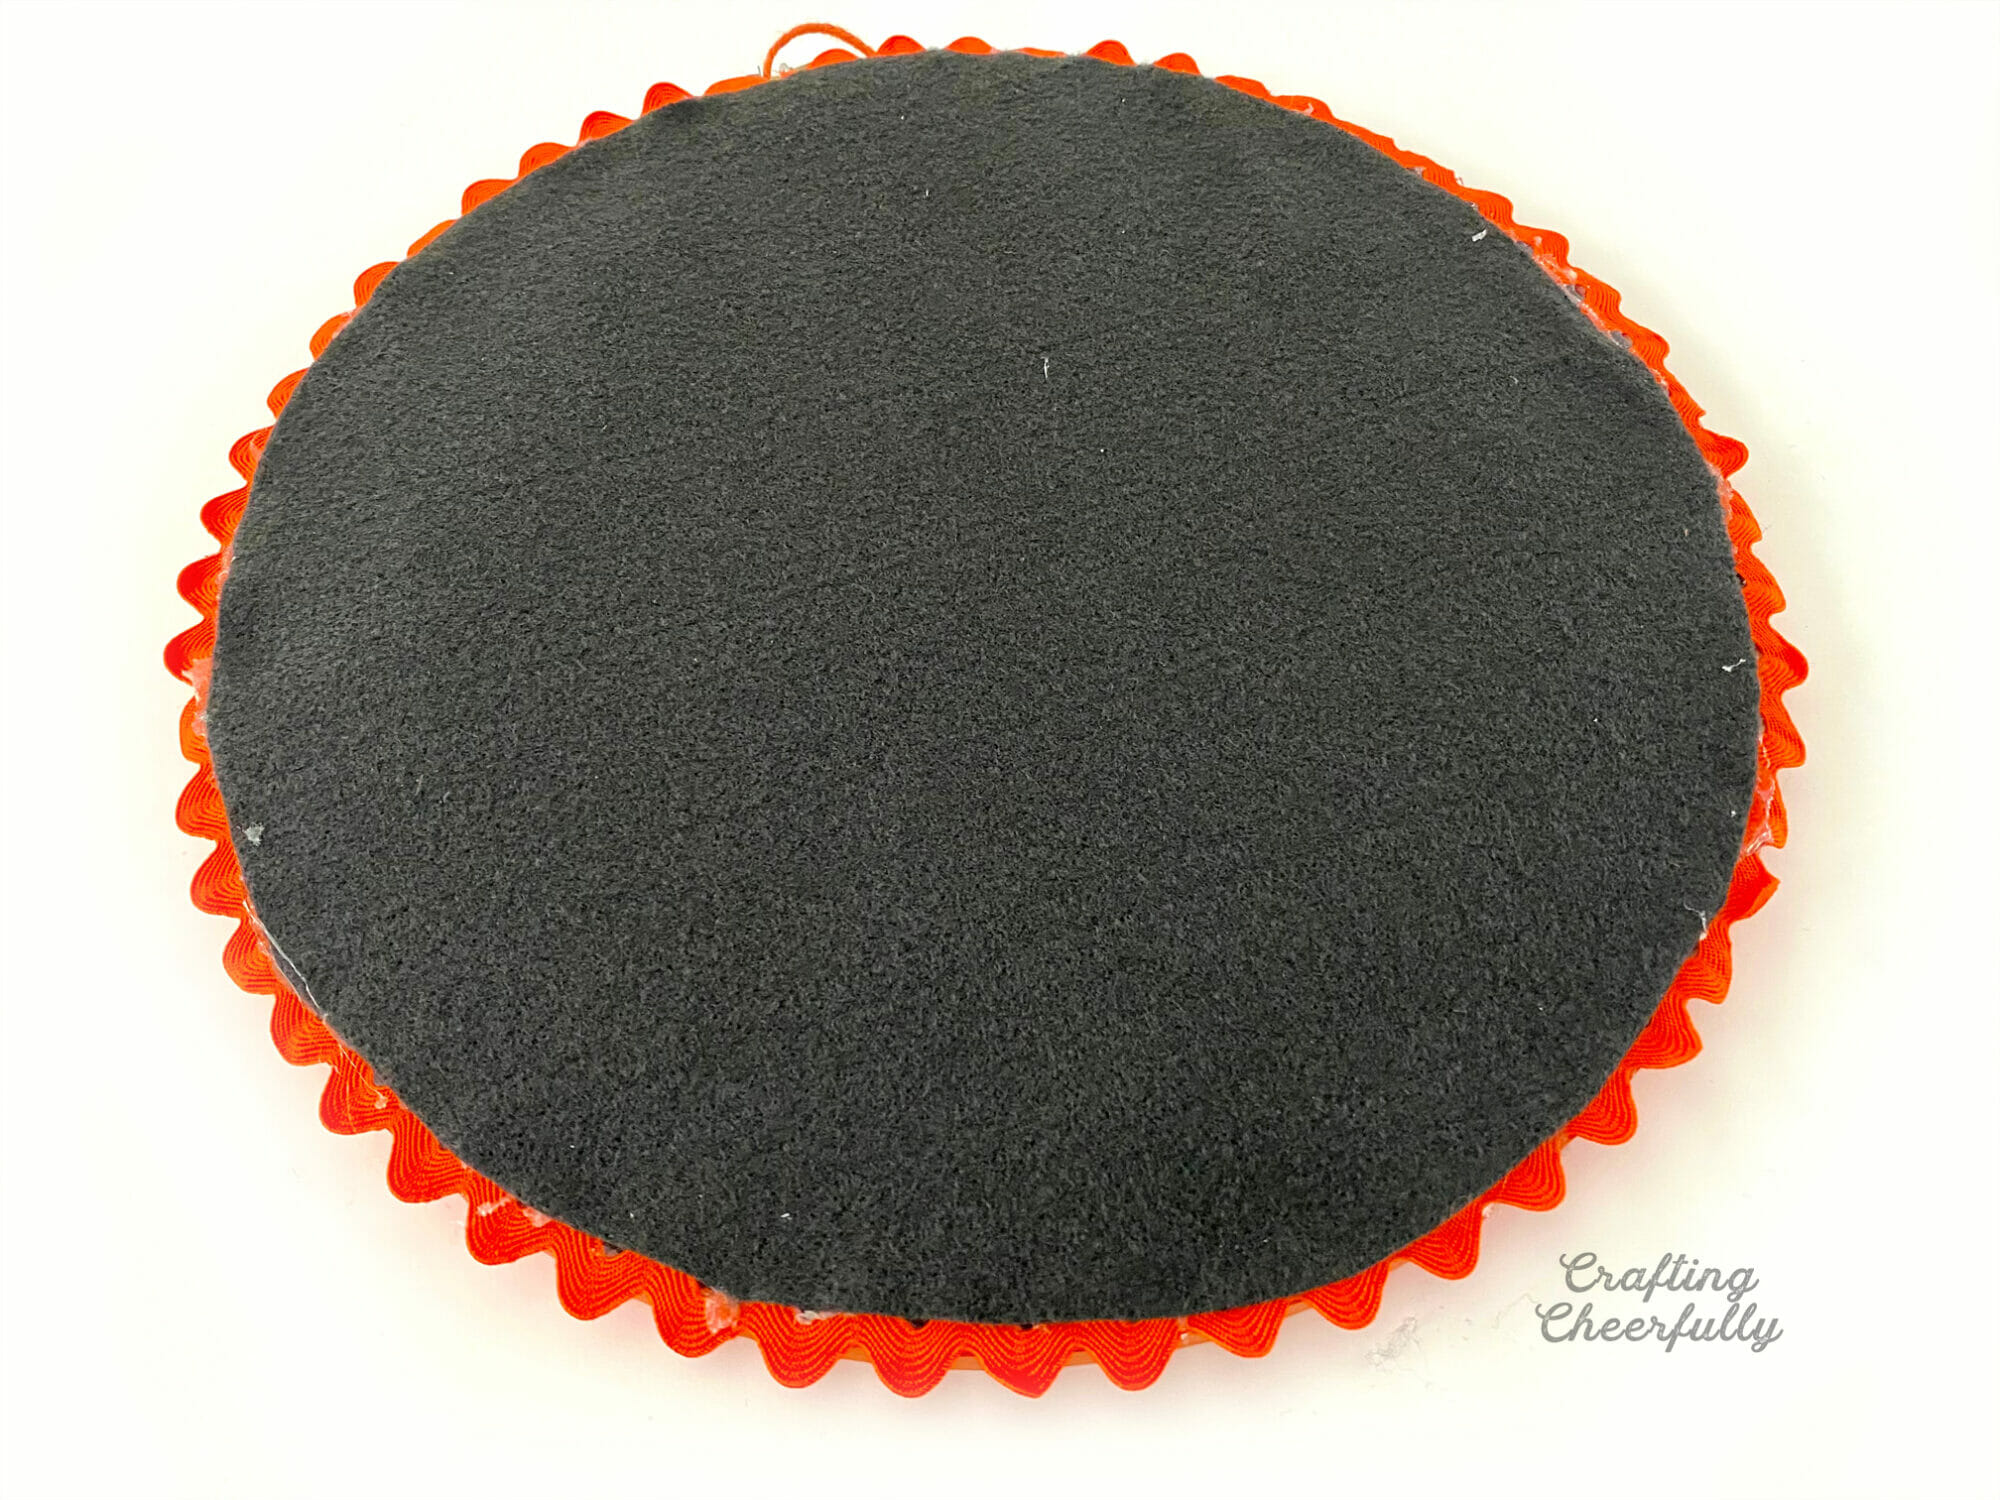 Back of embroidery hoop covered with black felt.